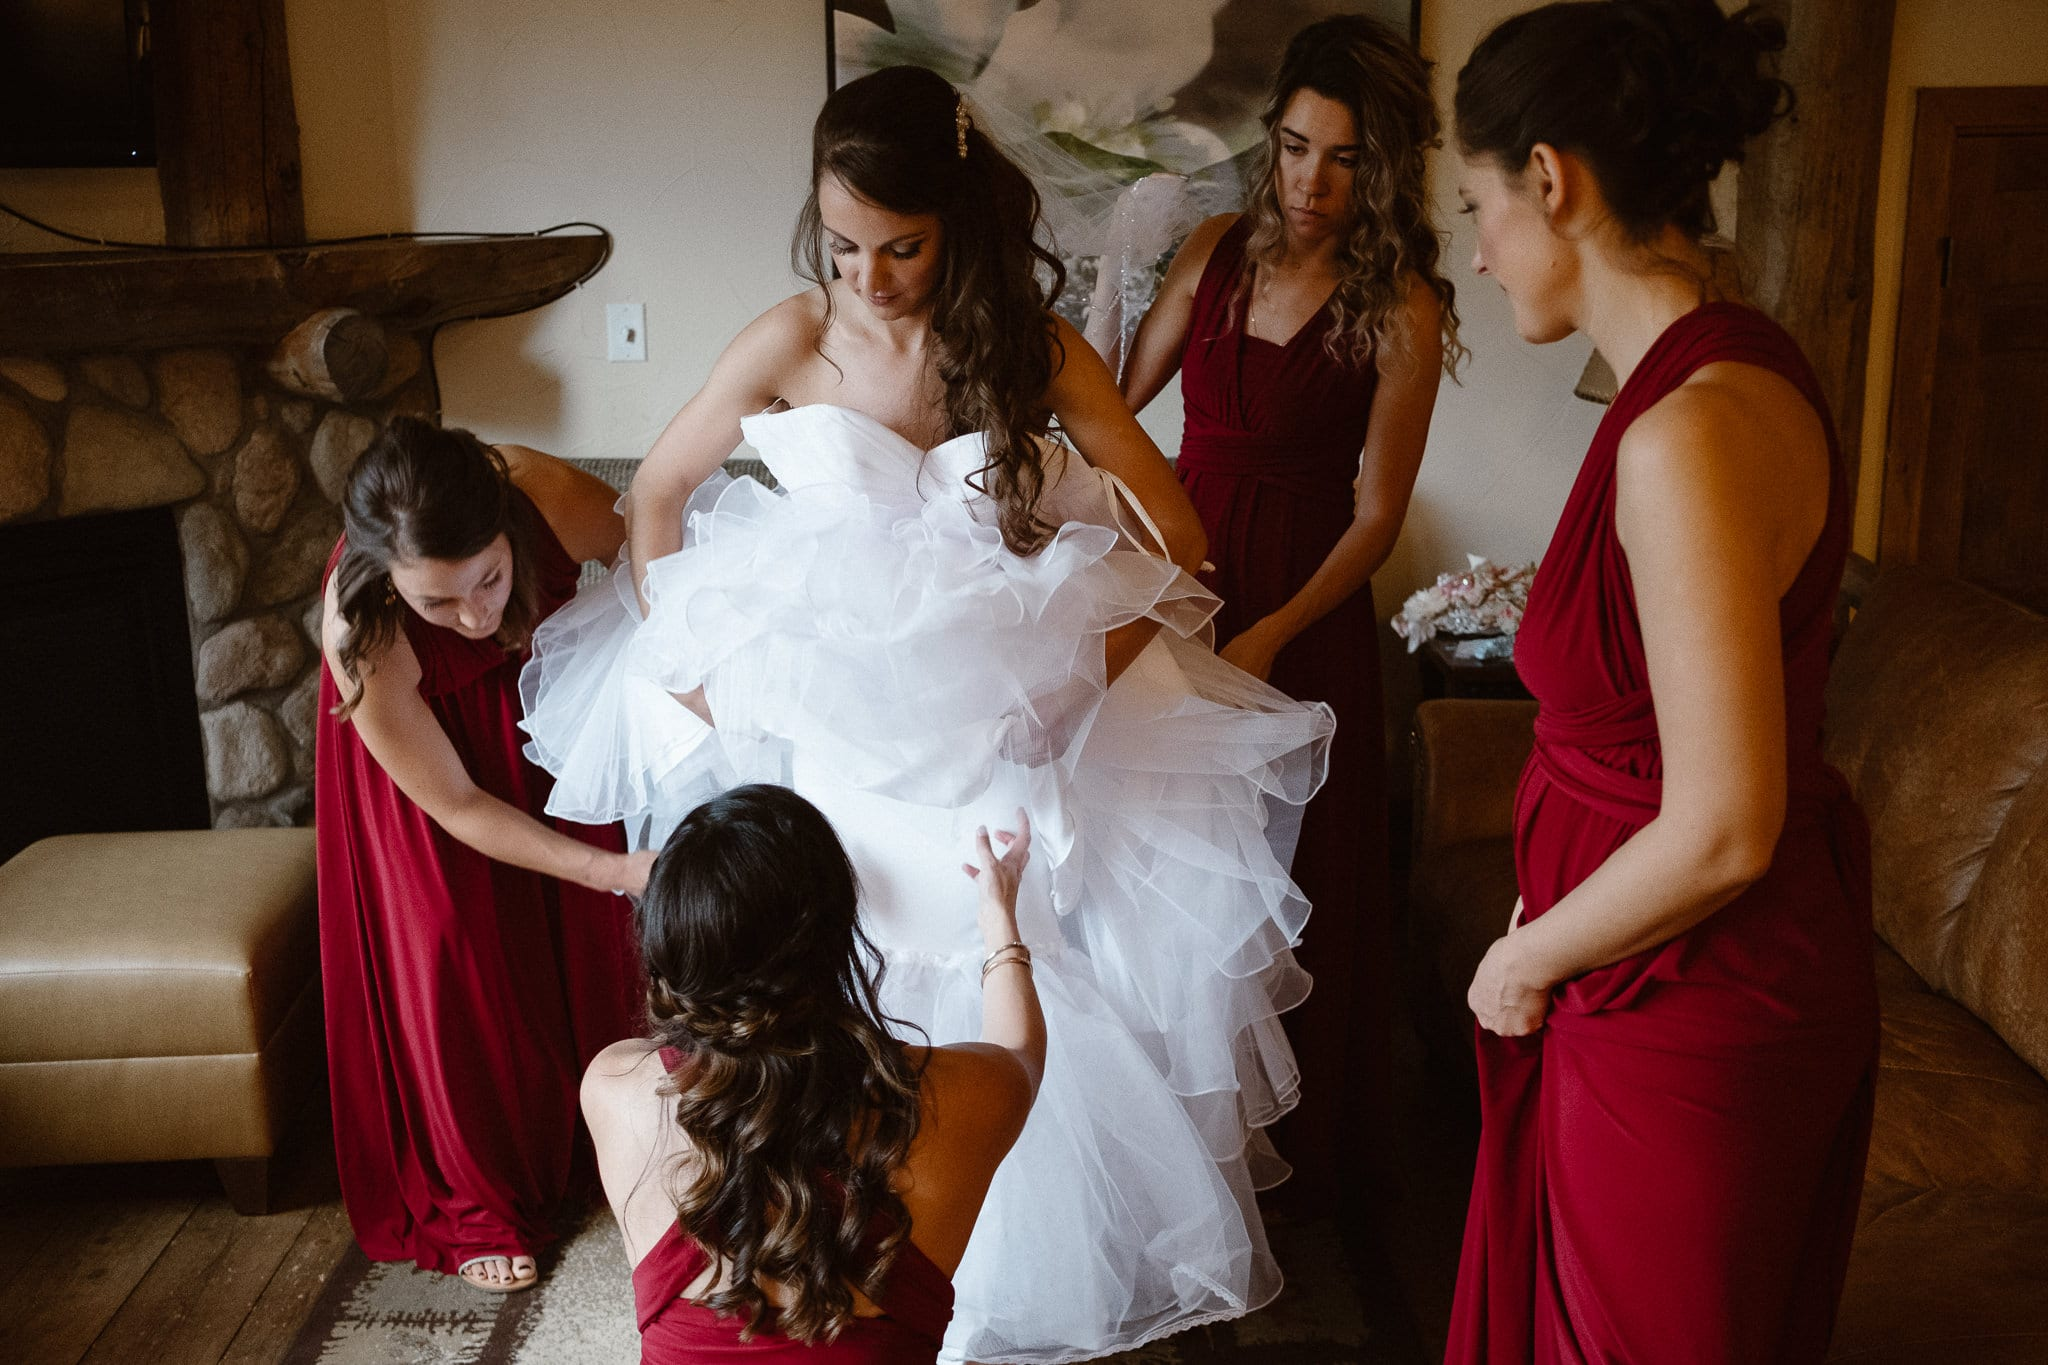 Lodge at Breckenridge Wedding Photographer, Colorado mountain wedding photographer, intimate wedding, bride getting ready, bridesmaids in deep red dresses